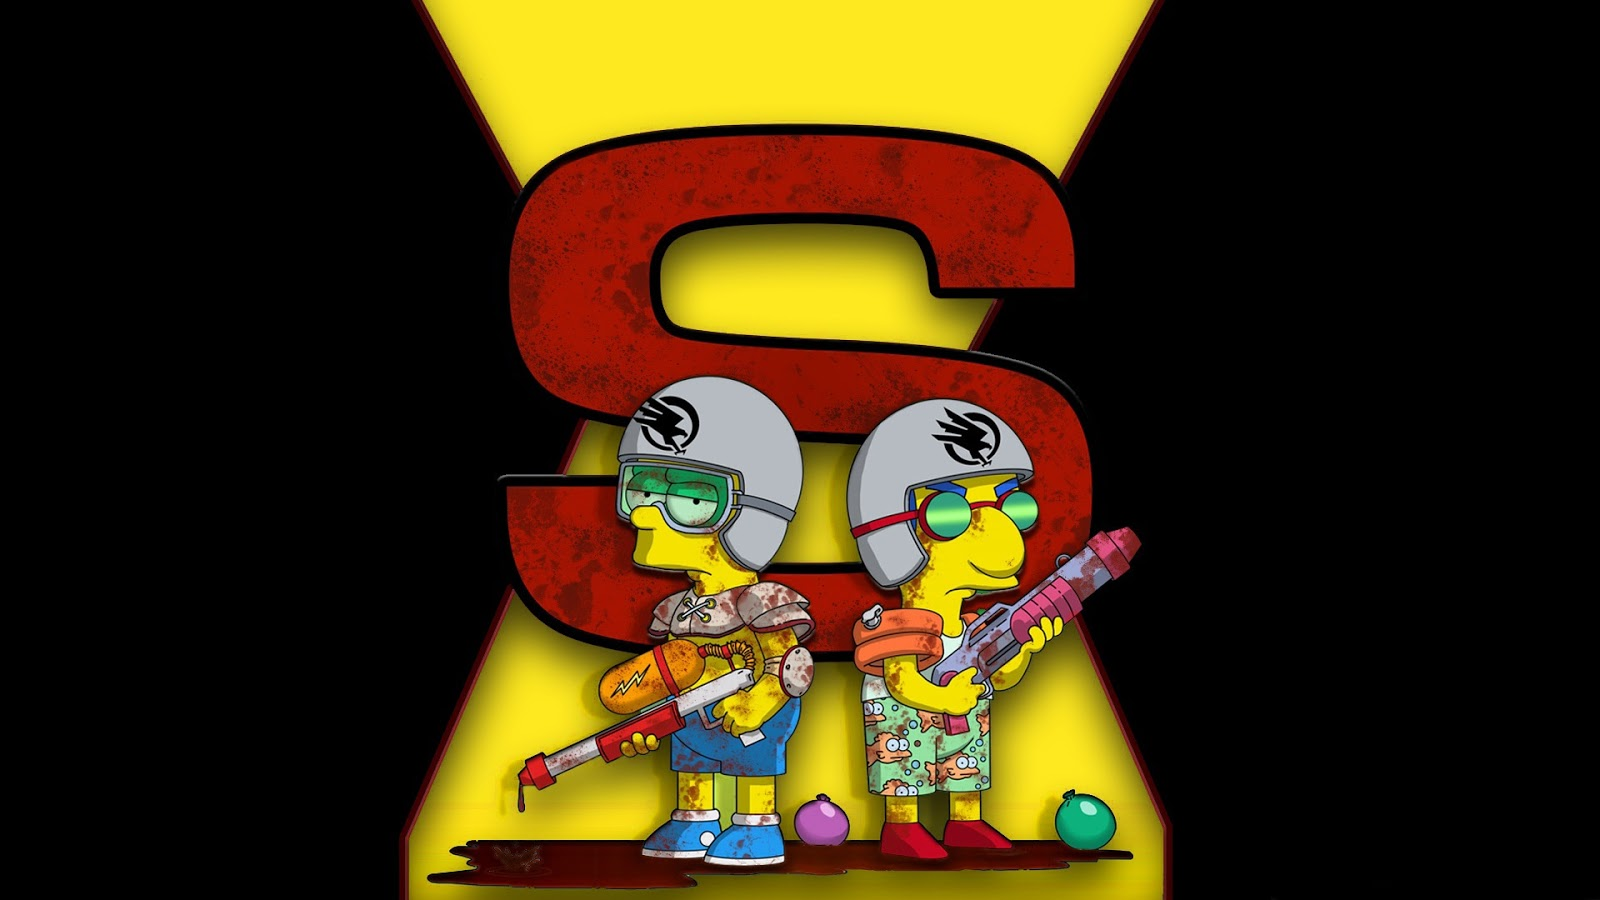 Bart and Millhouse Simpsons